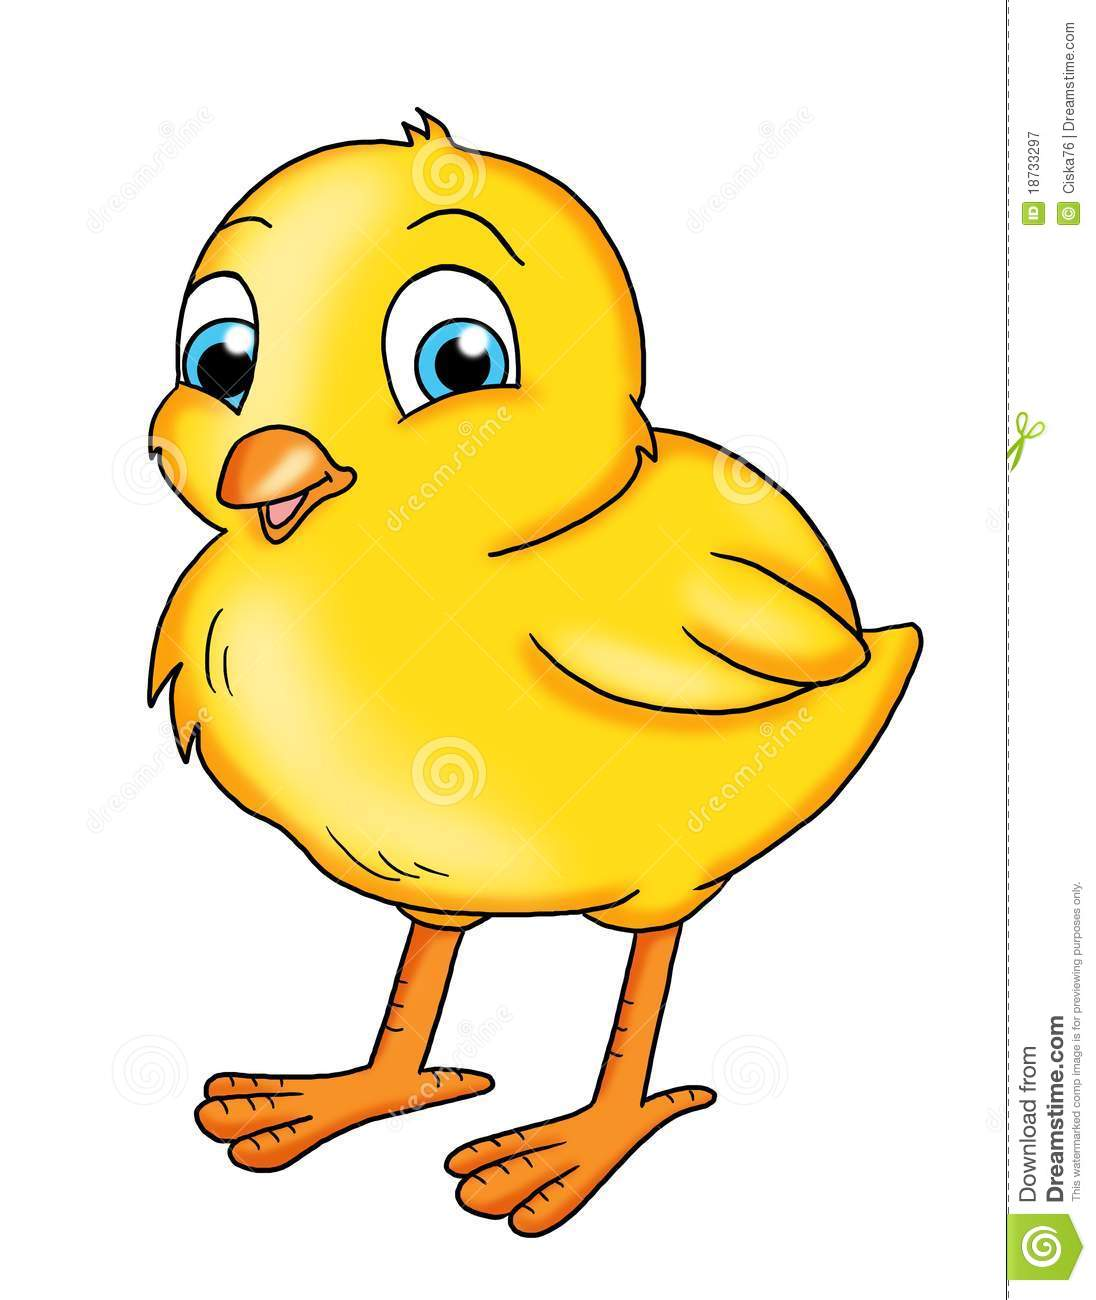 Baby Chick Royalty Free Stock Photograph-Baby Chick Royalty Free Stock Photography Image 18733297-4